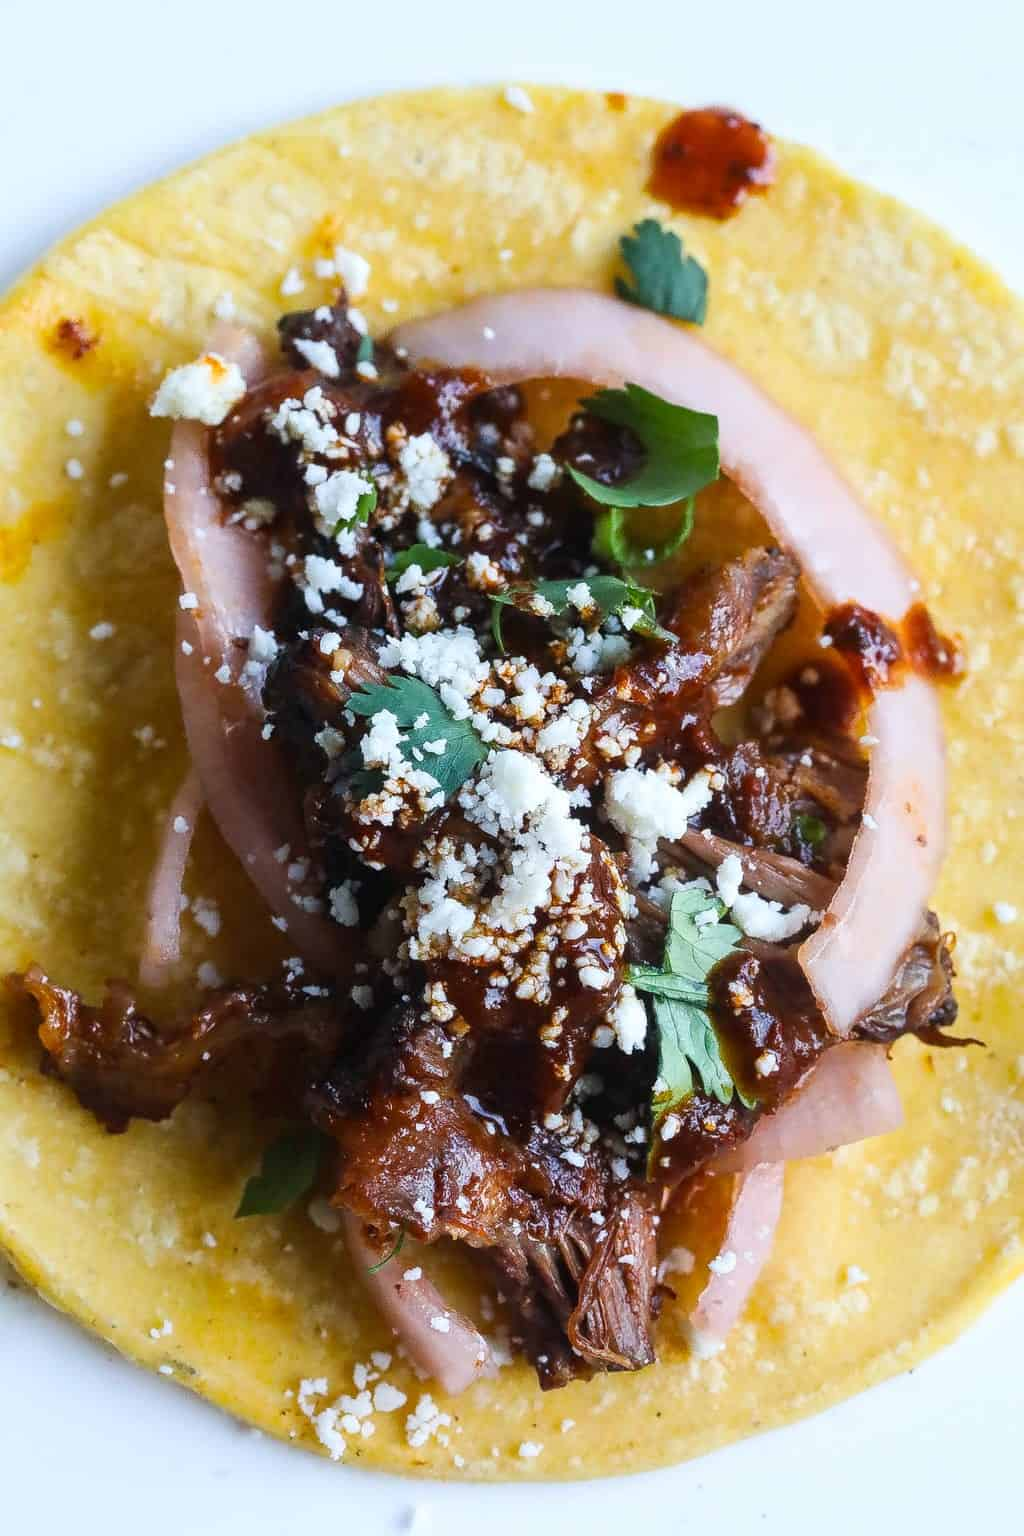 tacos made with braised beef oxtails